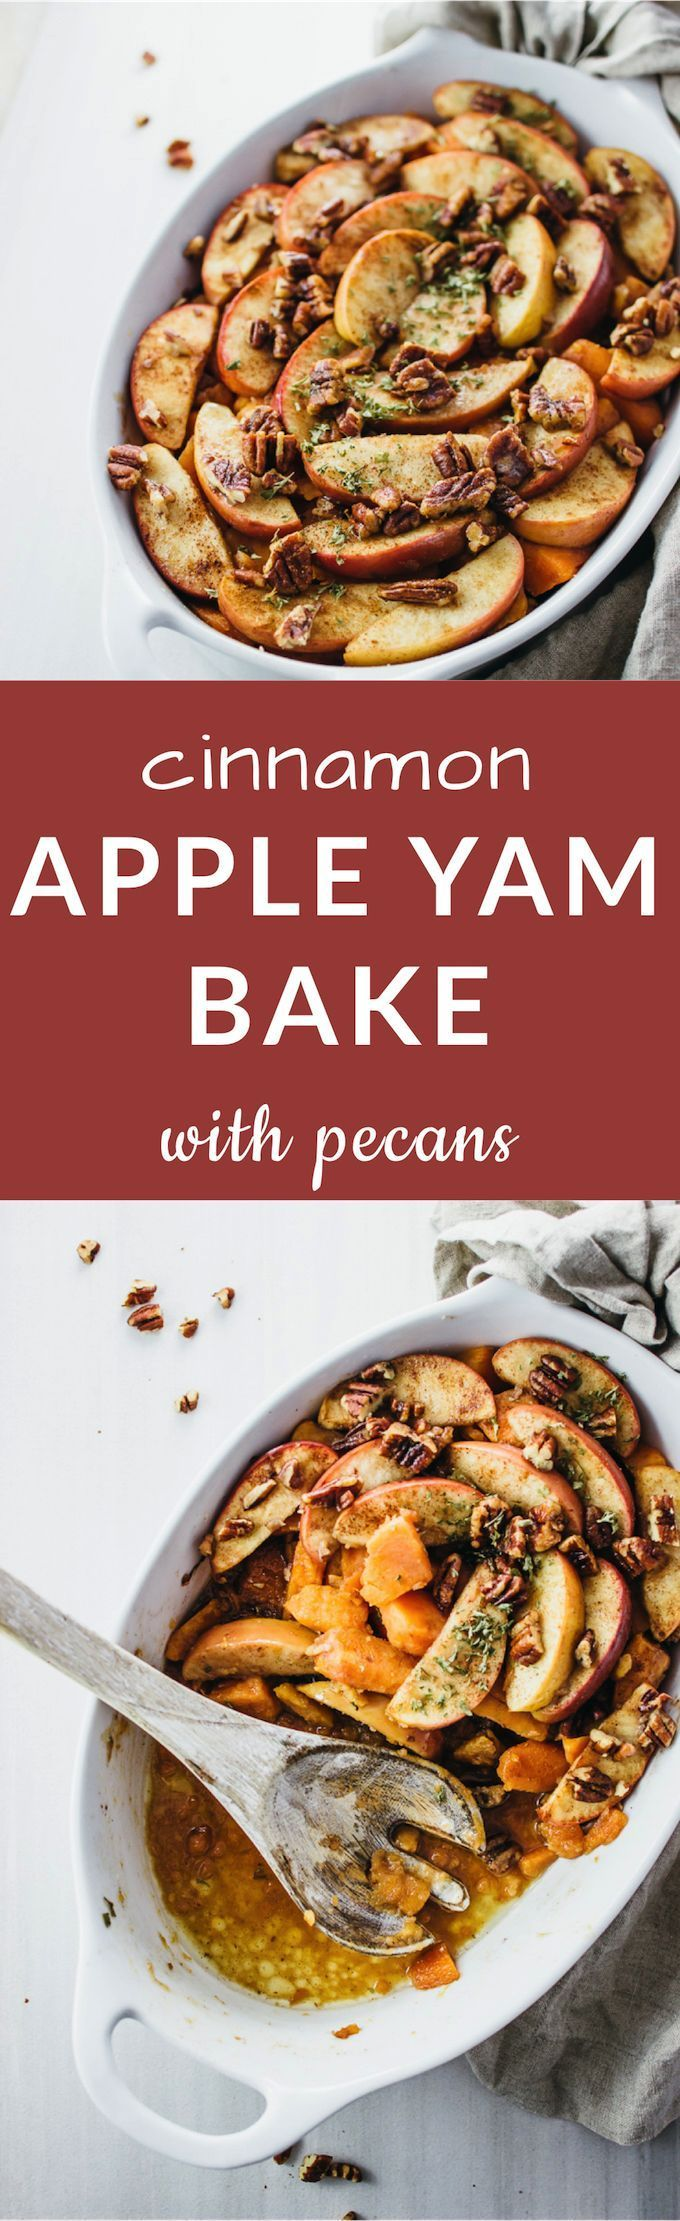 This is a savory-sweet cinnamon apple yam bake, with delicious roasted sweet potato chunks layered between thinly sliced cinnamon-coated apples and crunchy toasted pecans.